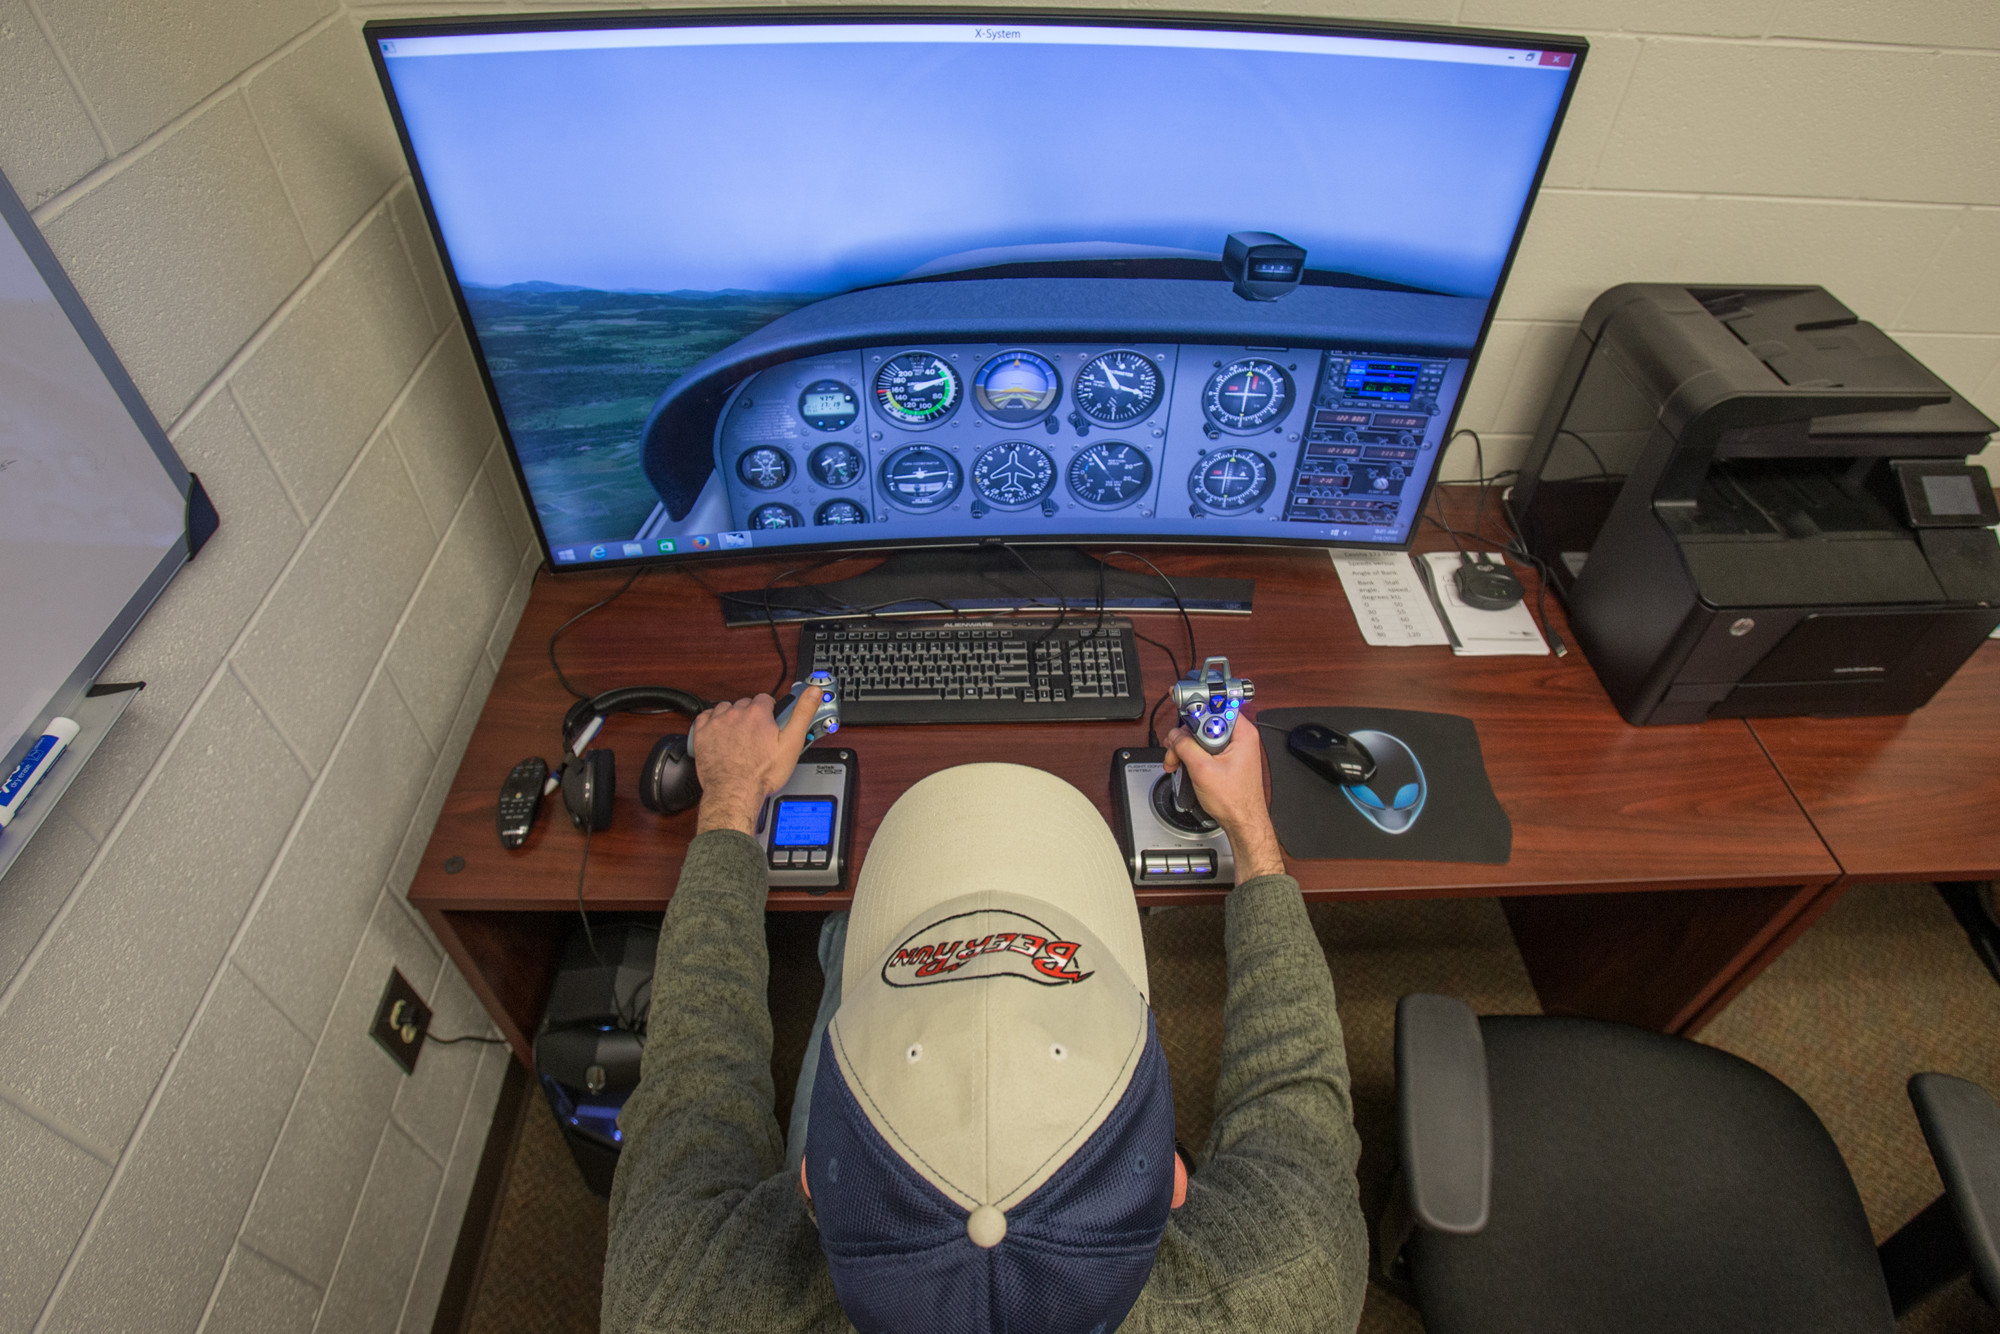 Flight Simulator Allows Engineering Students to Experience ...